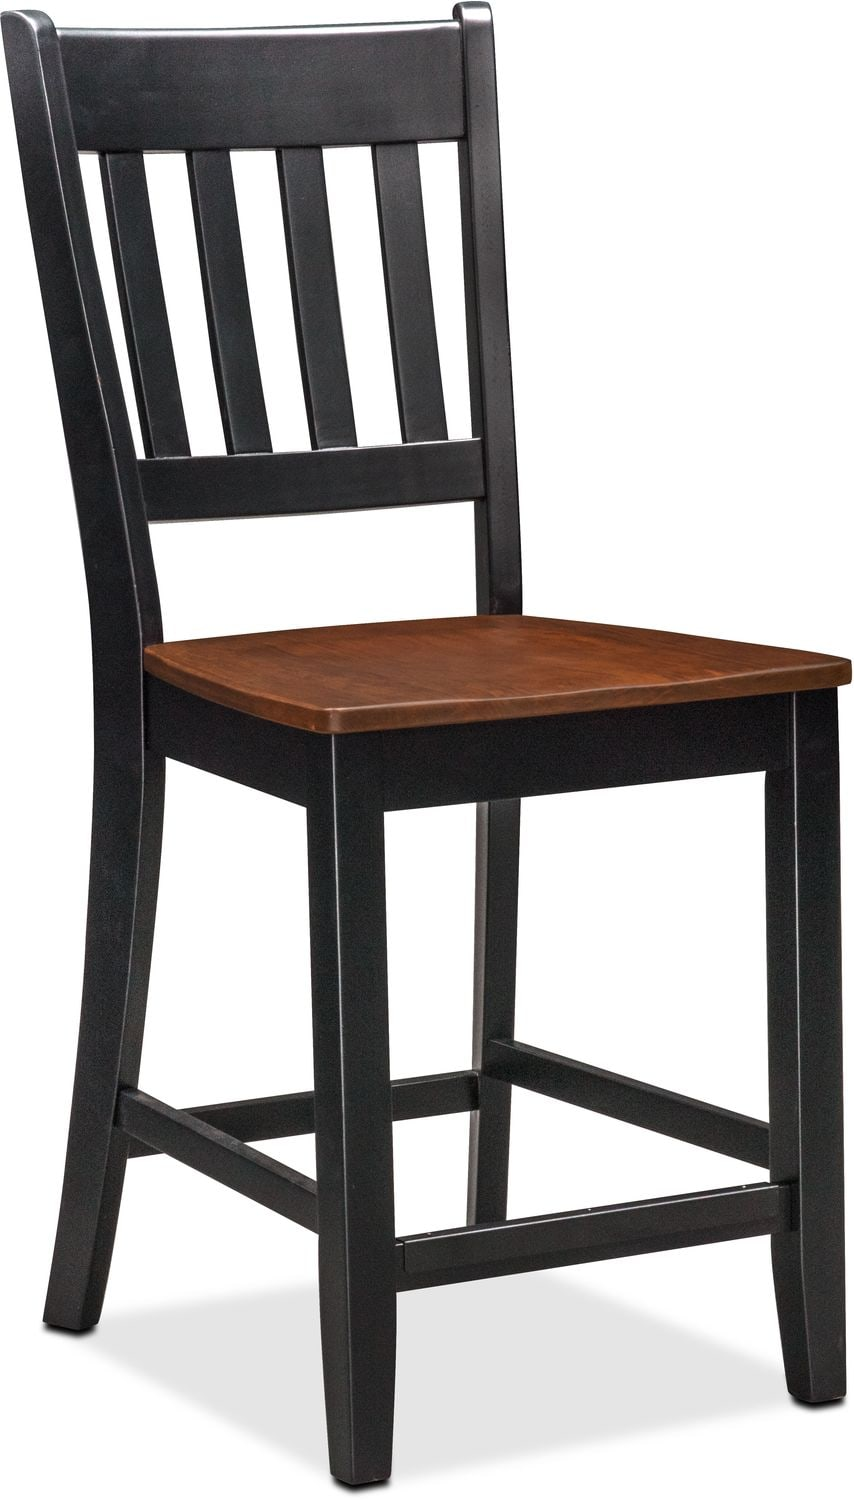 counter height chairs with back used plastic folding wholesale nantucket table and 4 slat black cherry